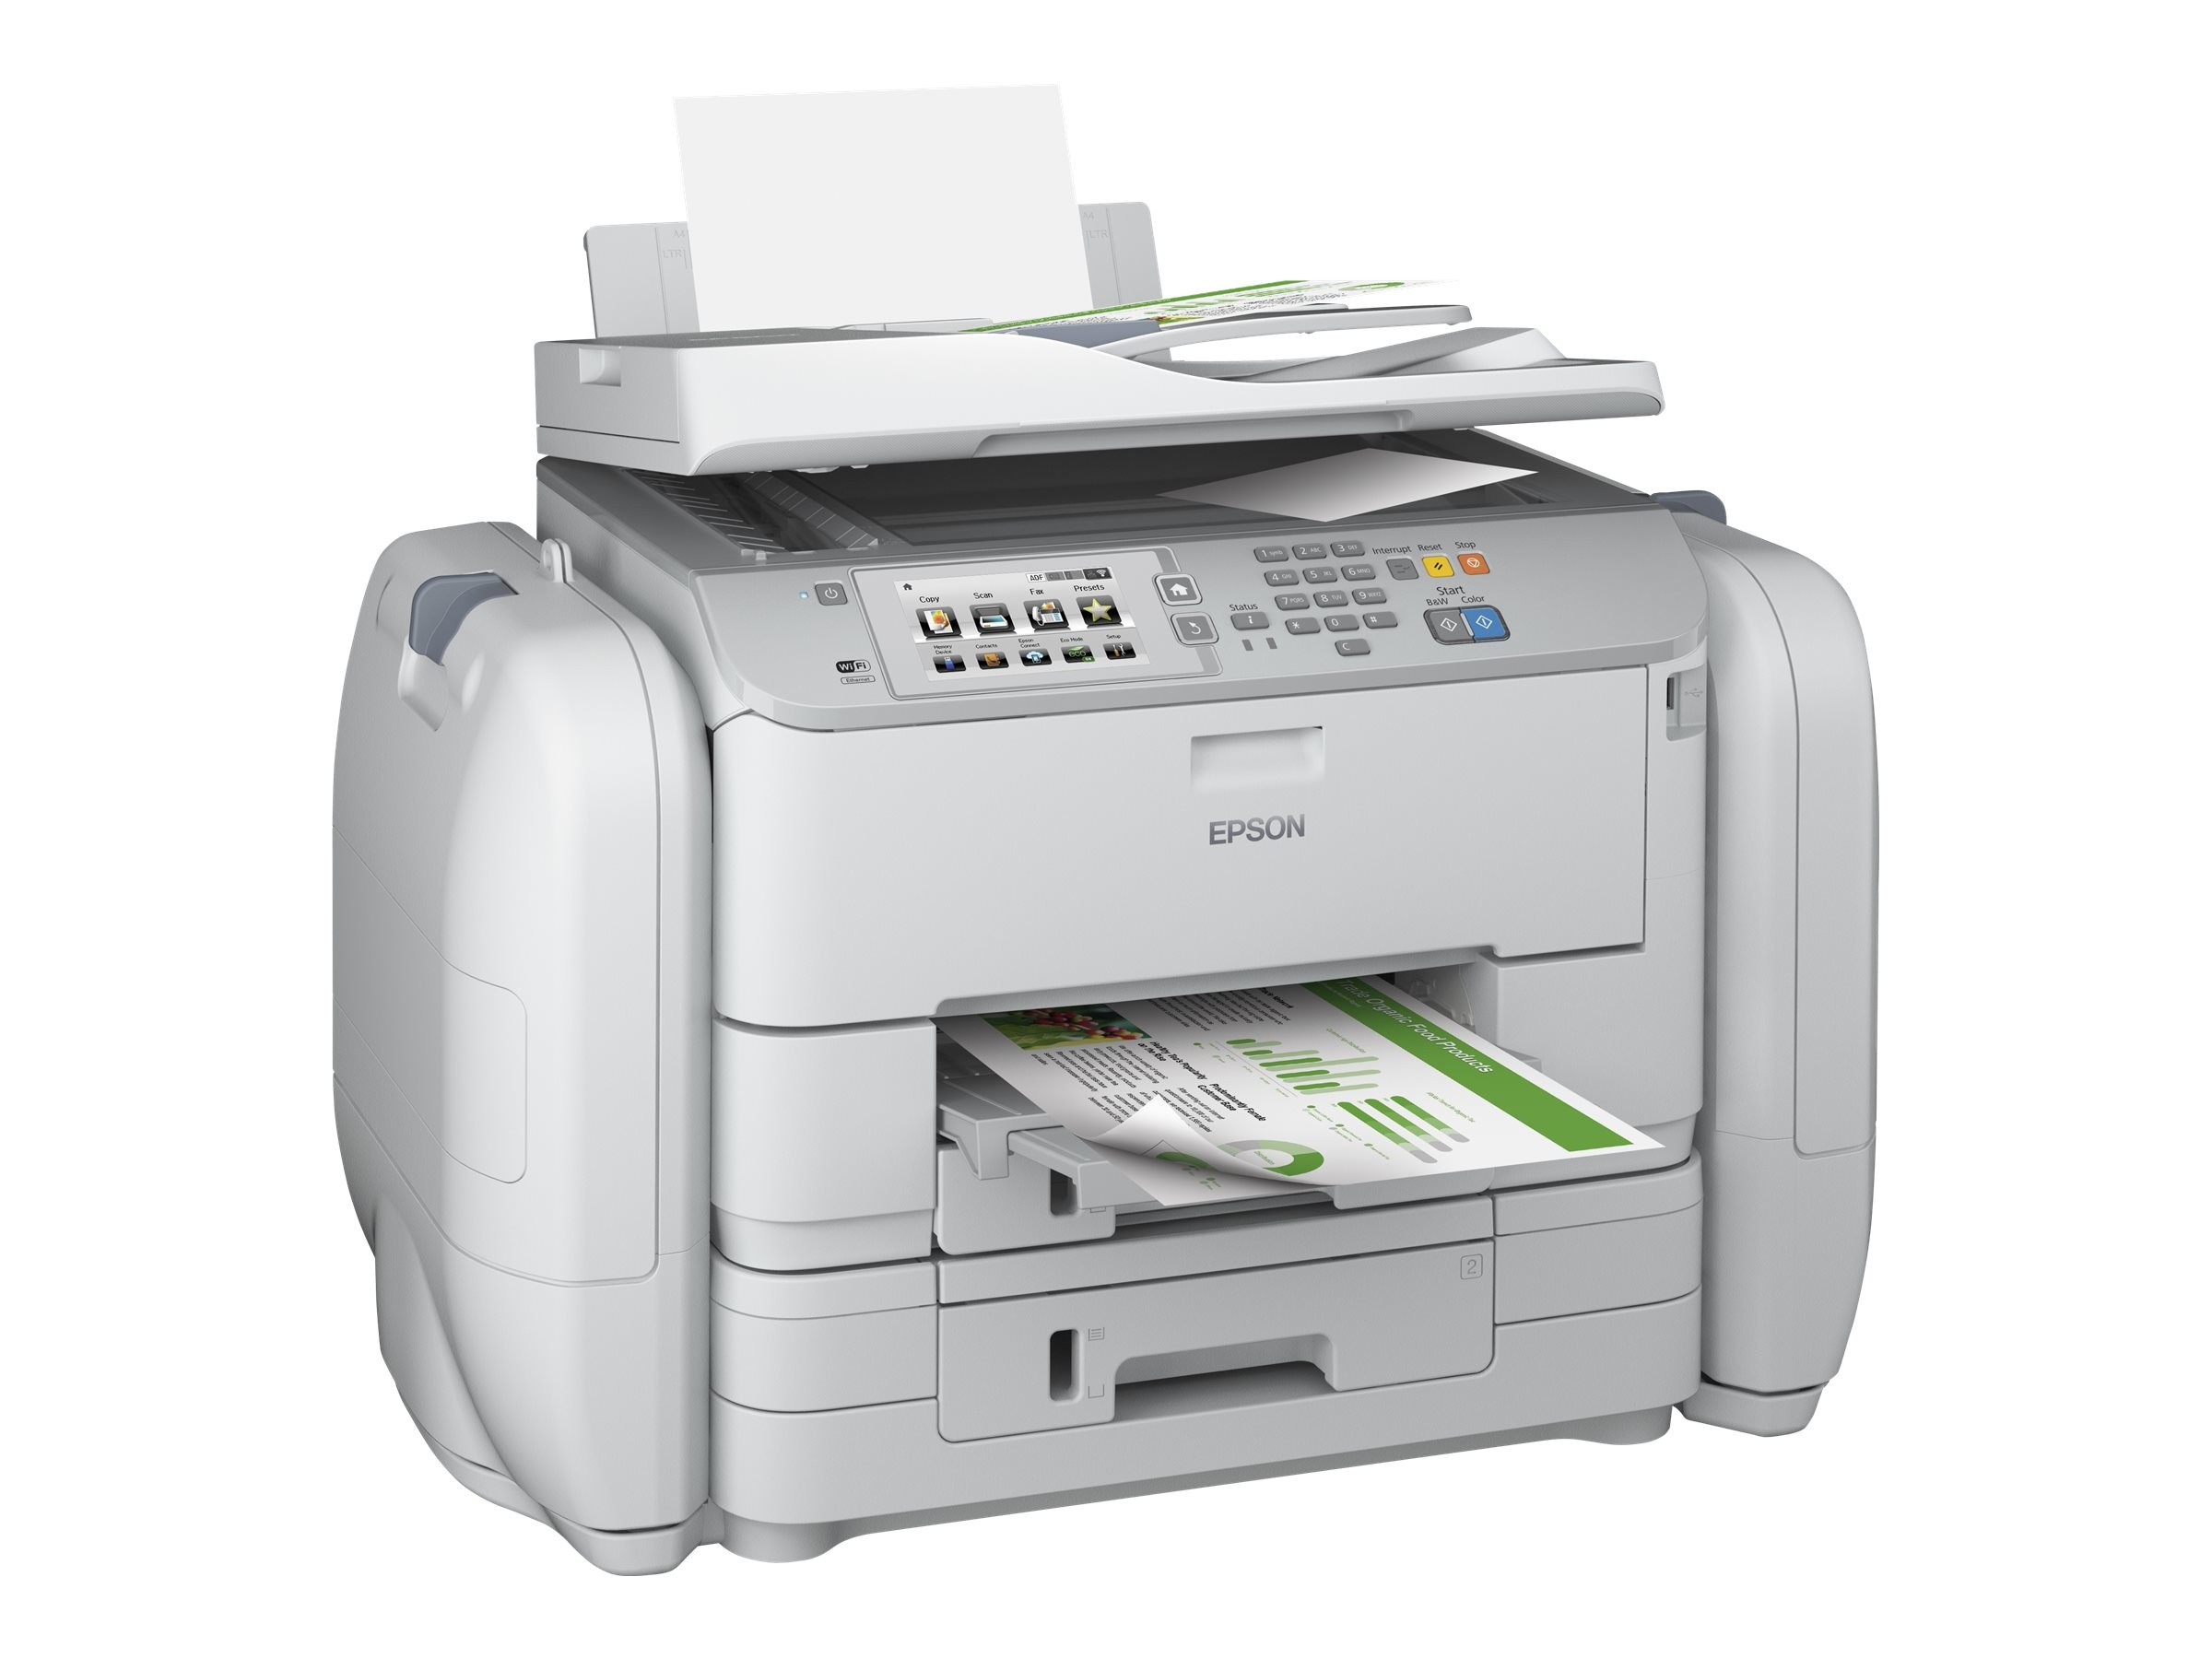 Epson WorkForce Pro WF-R5690 Multifunction Printer, C11CE27201